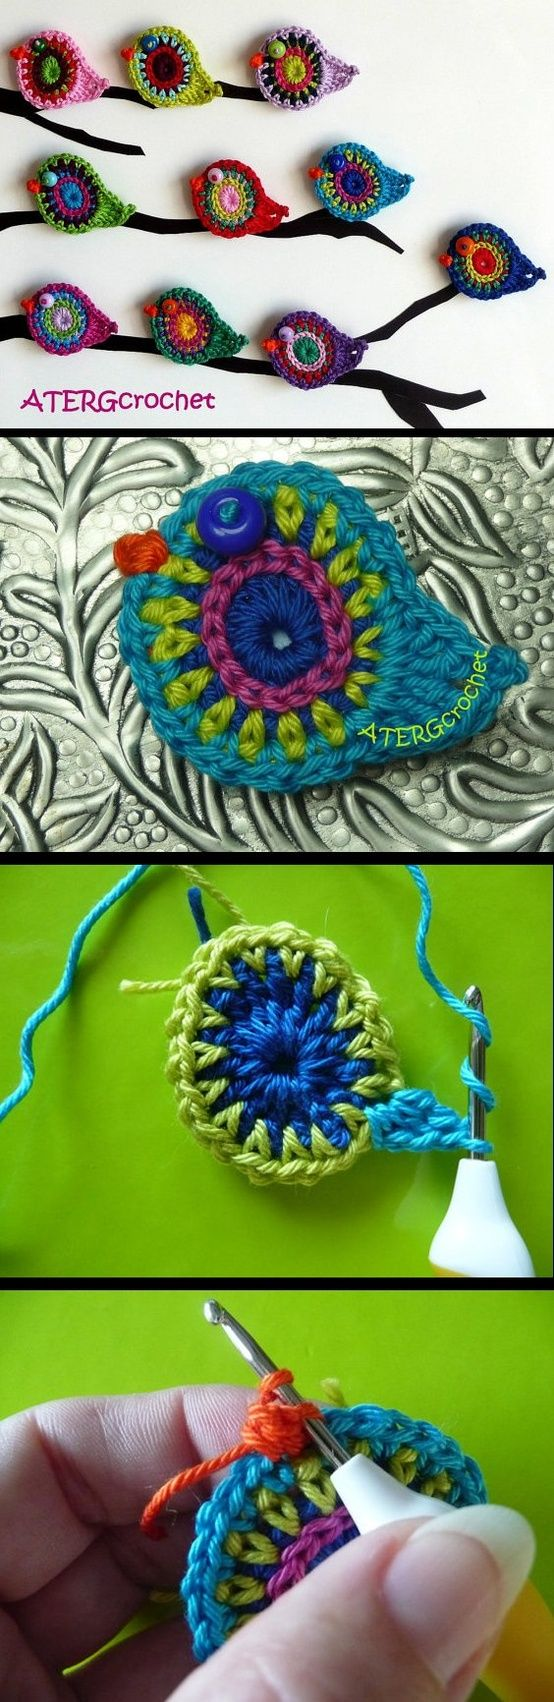 Crocheted birdies - Tutorial. Love the colors, the bird symbol and would be cool to decorate a tree.